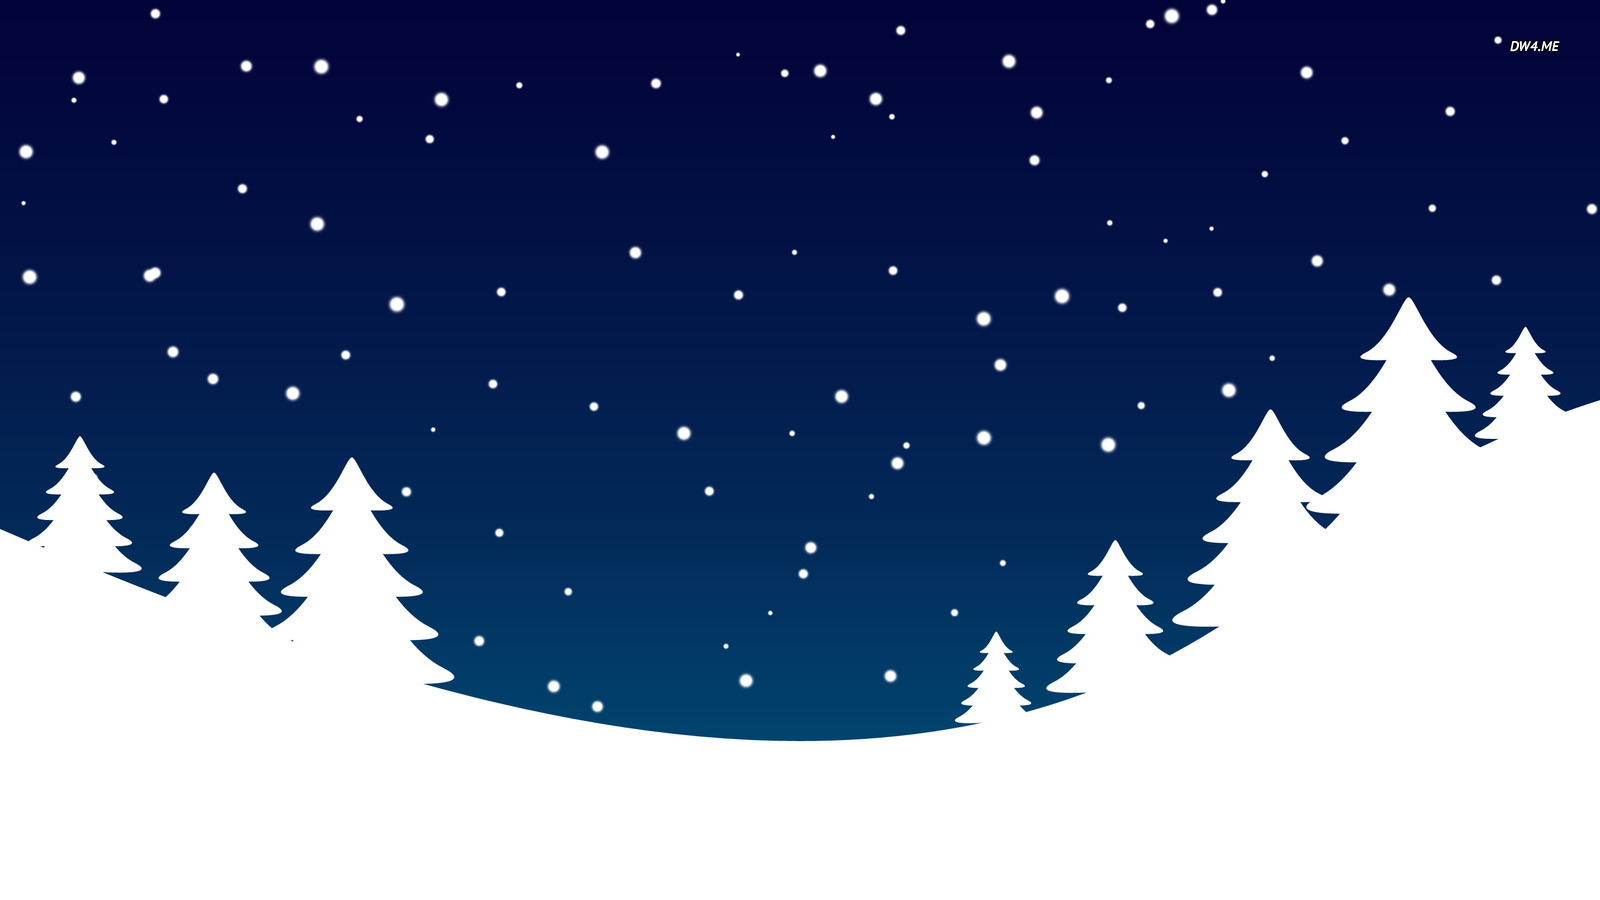 Cartoon Winter Wallpaper - WallpaperSafari